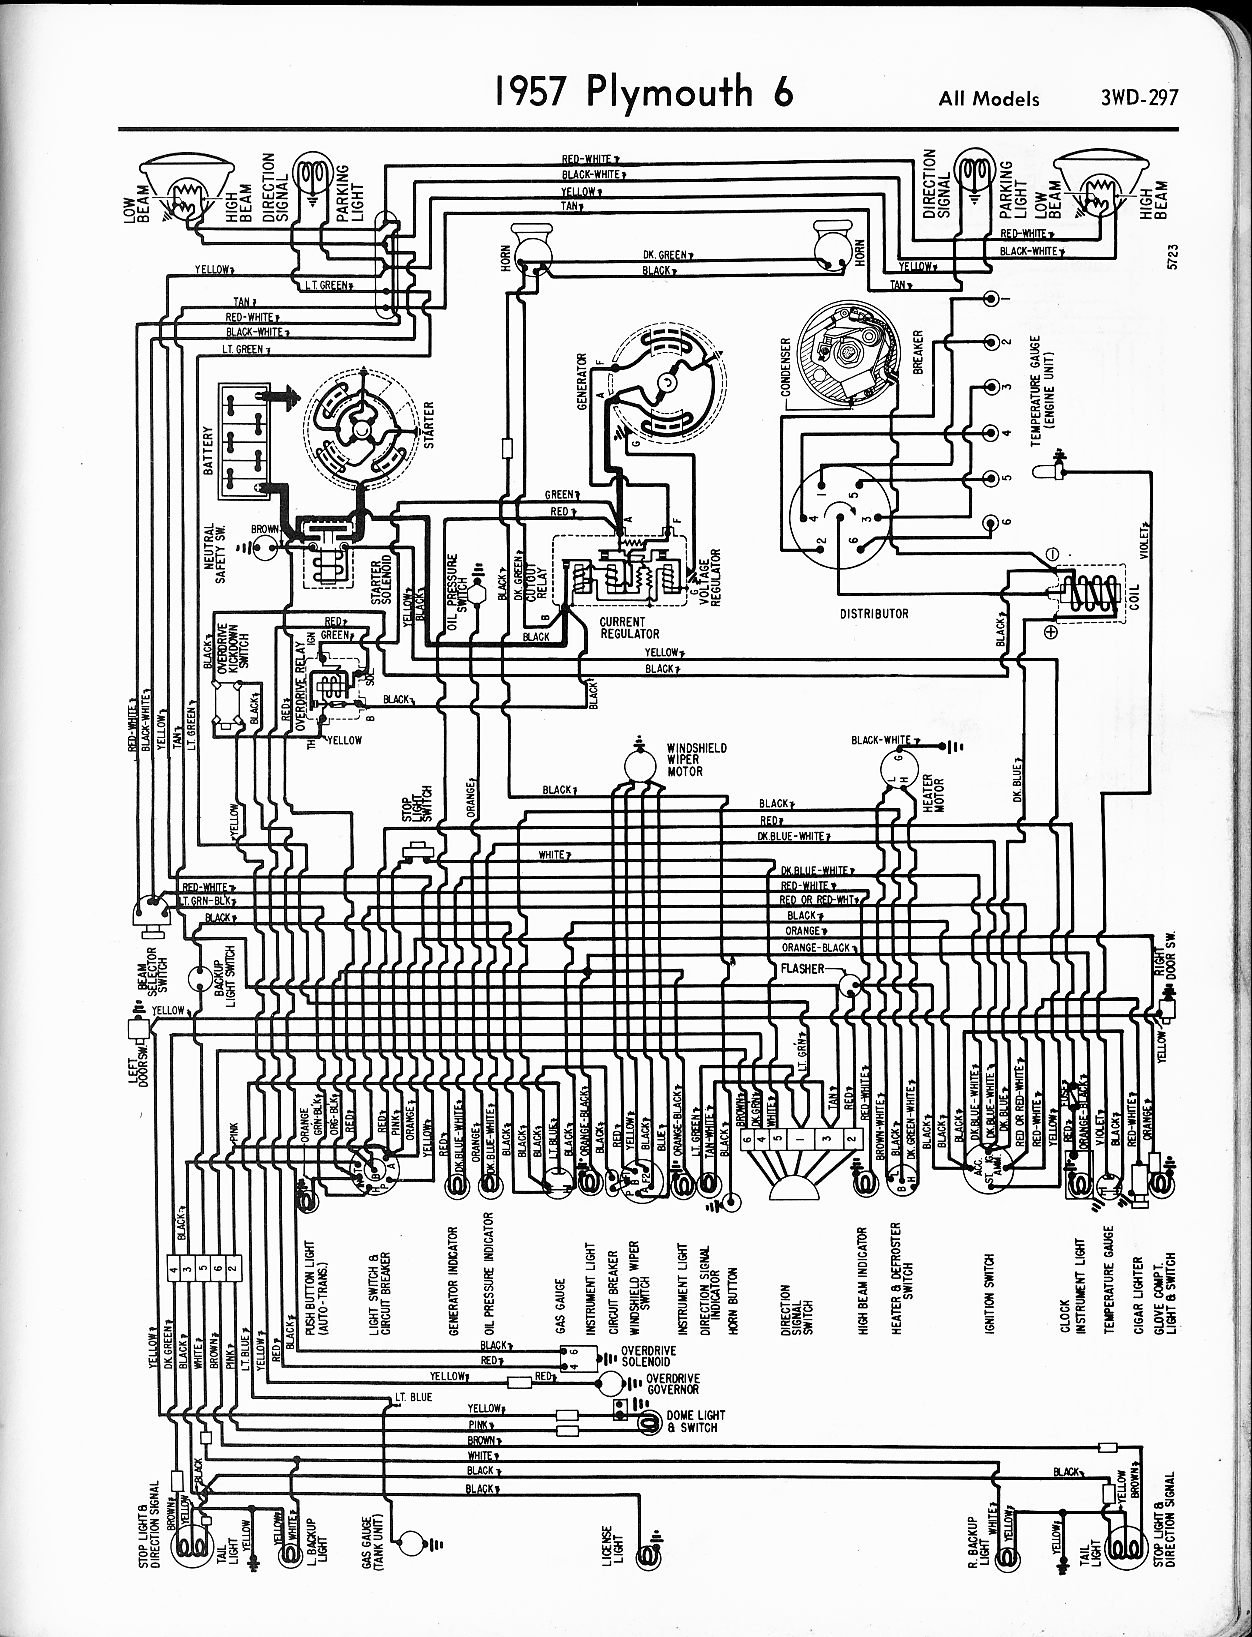 1966 Plymouth Satellite Wiring Diagram Auto Electrical Get Free Image About